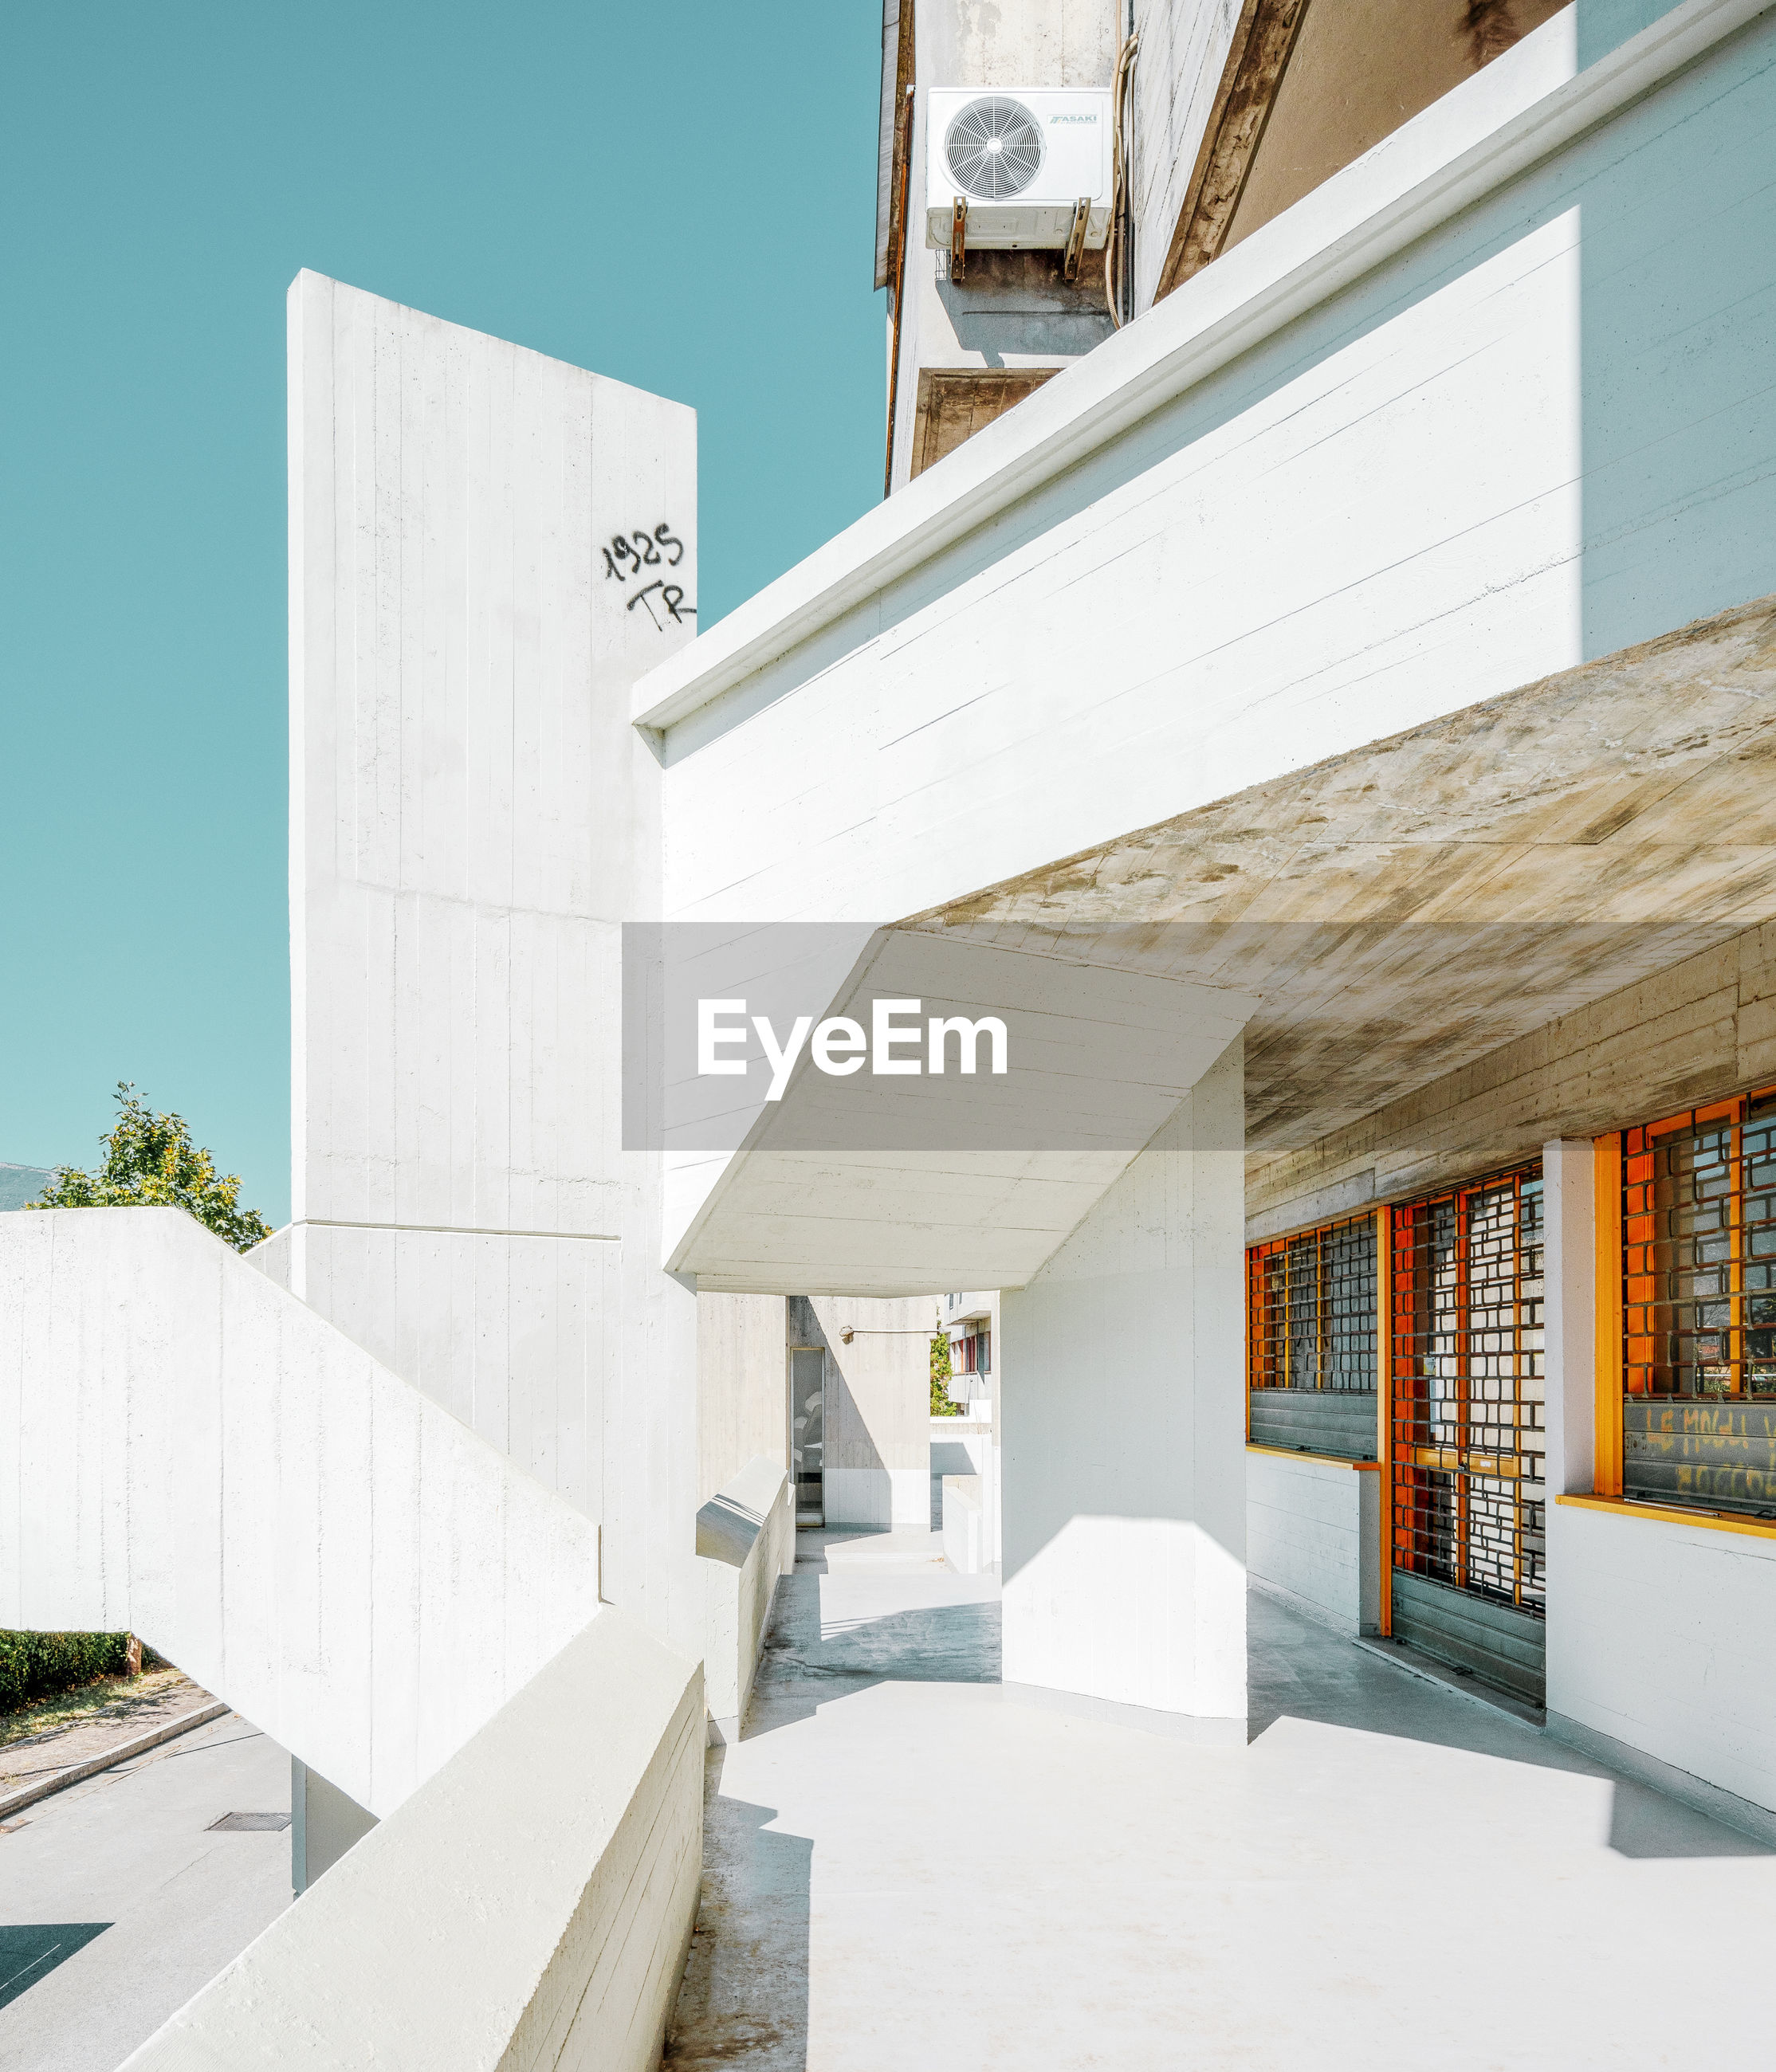 architecture, built structure, building exterior, building, white color, whitewashed, no people, sunlight, nature, staircase, day, outdoors, modern, sunny, clear sky, sky, wall - building feature, entrance, steps and staircases, city, luxury, courtyard